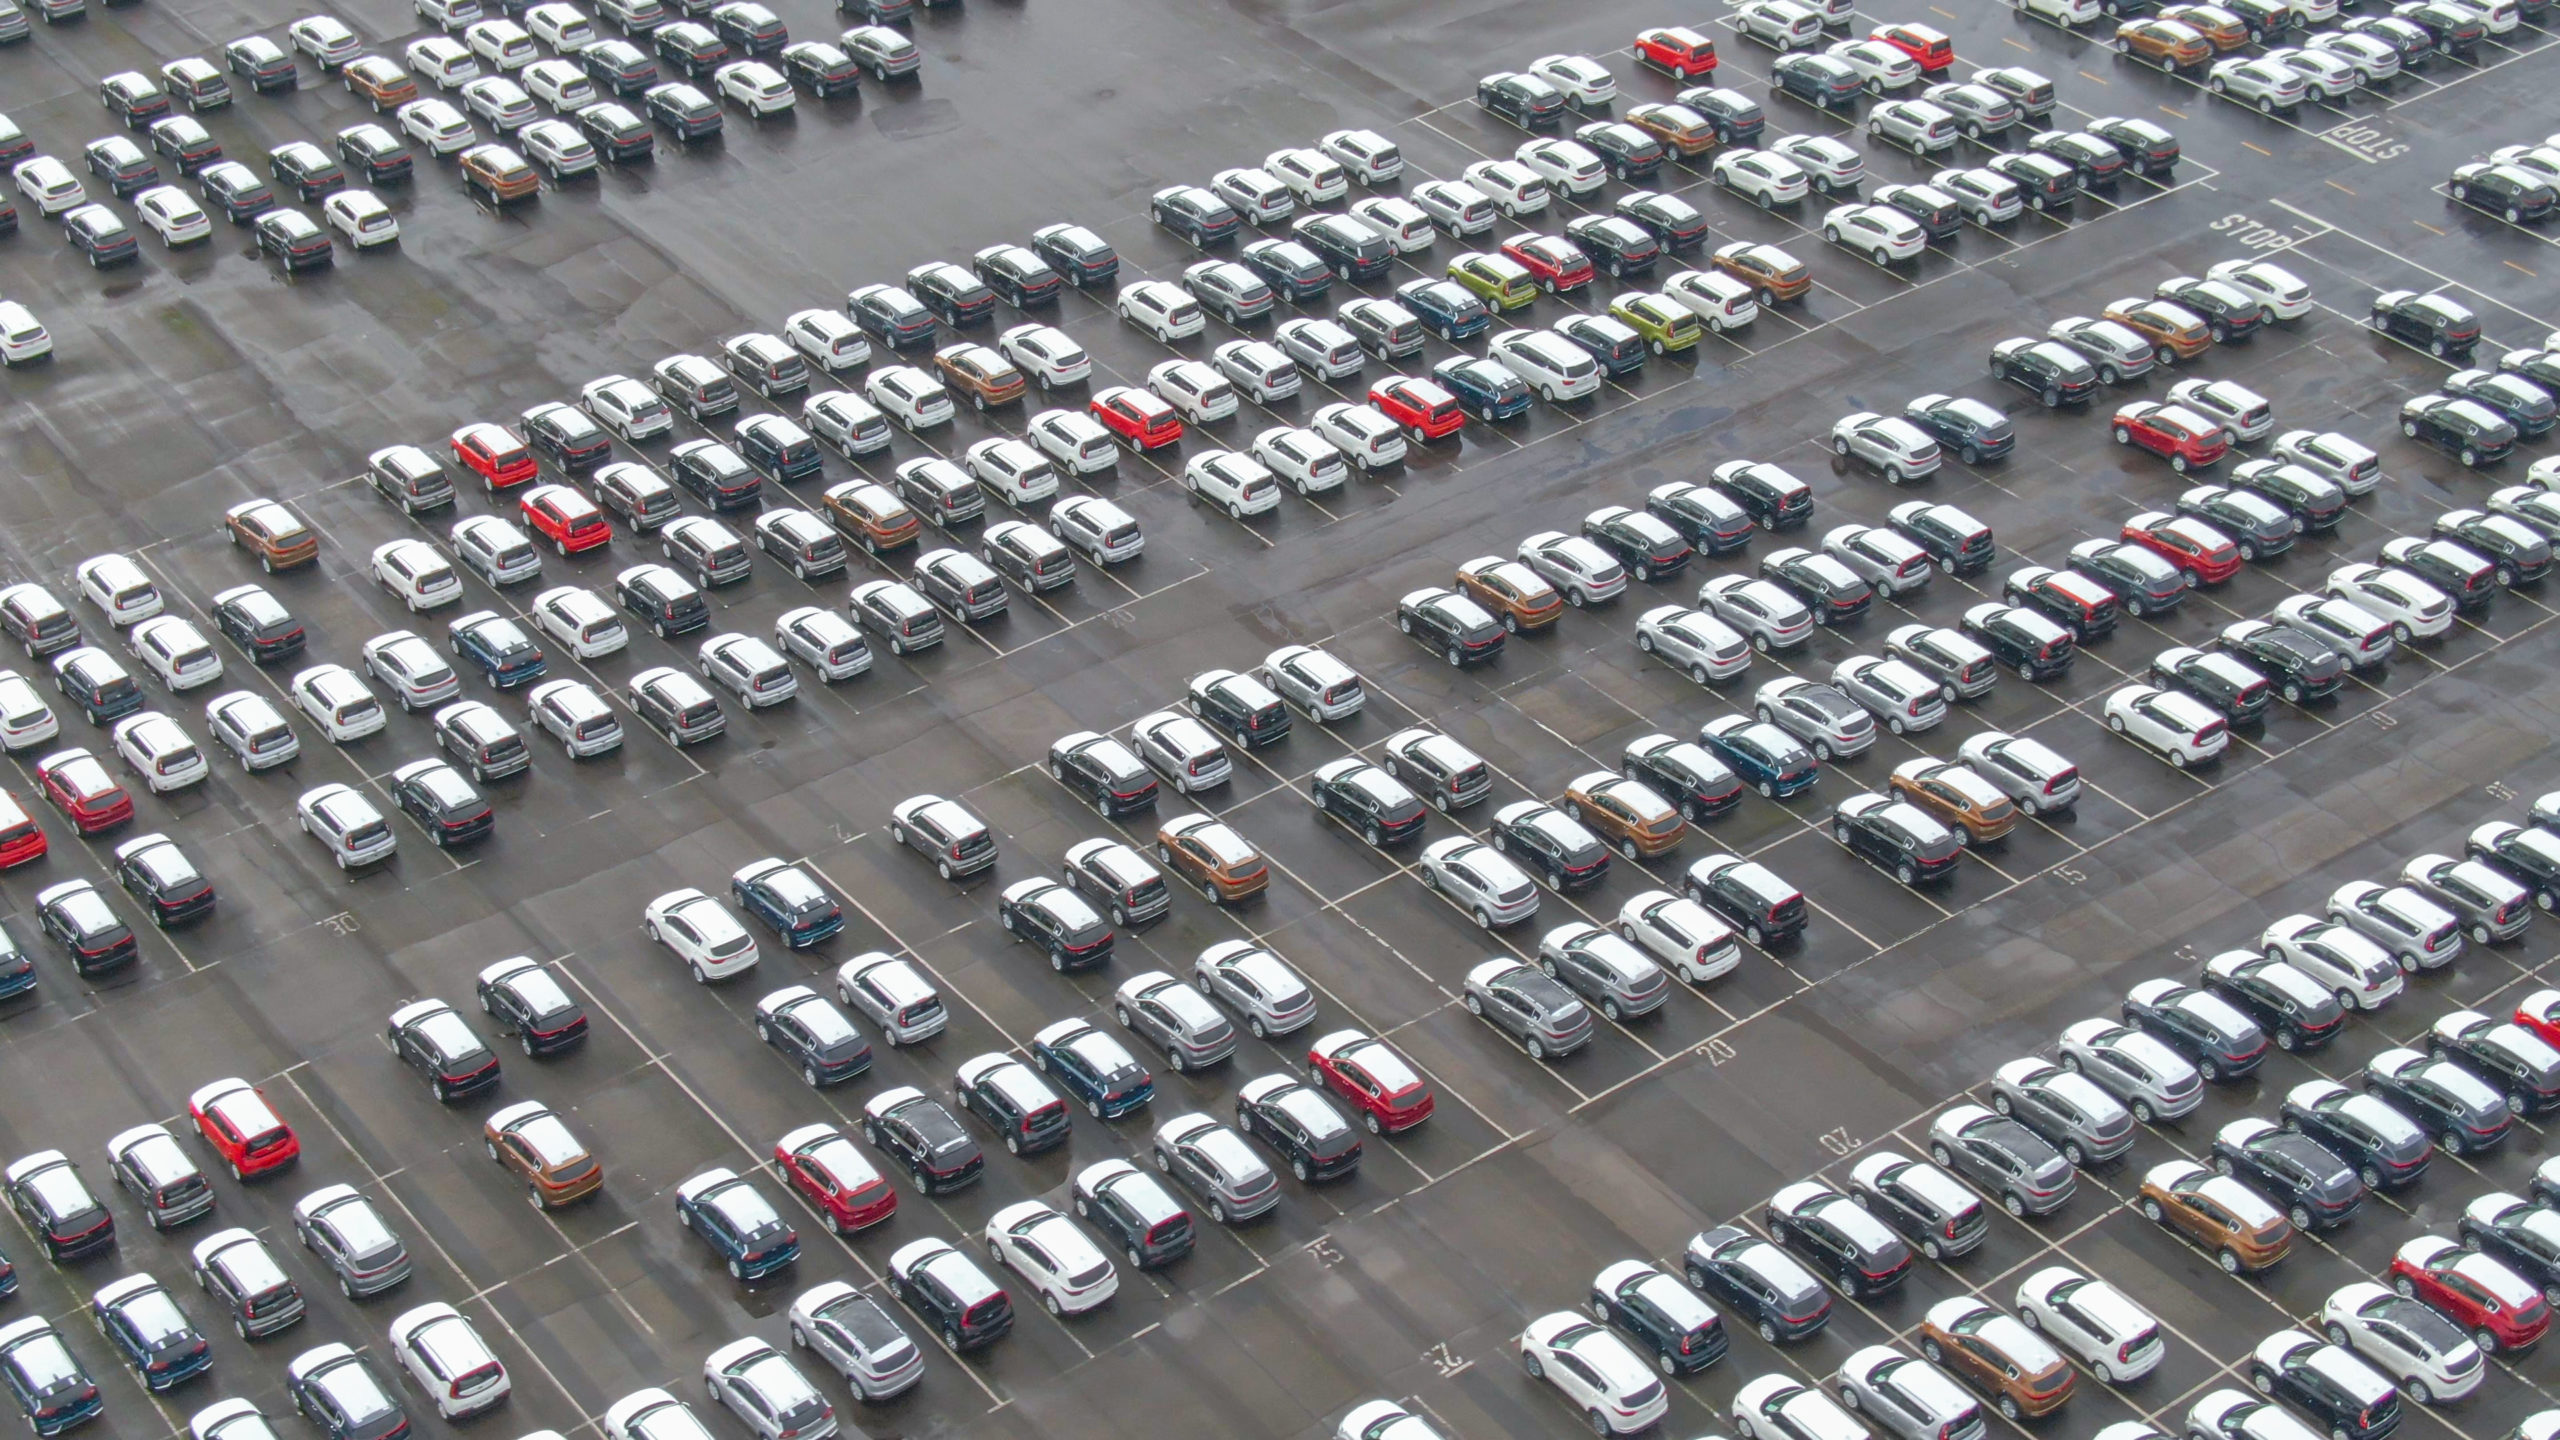 Many cars in large parking lot